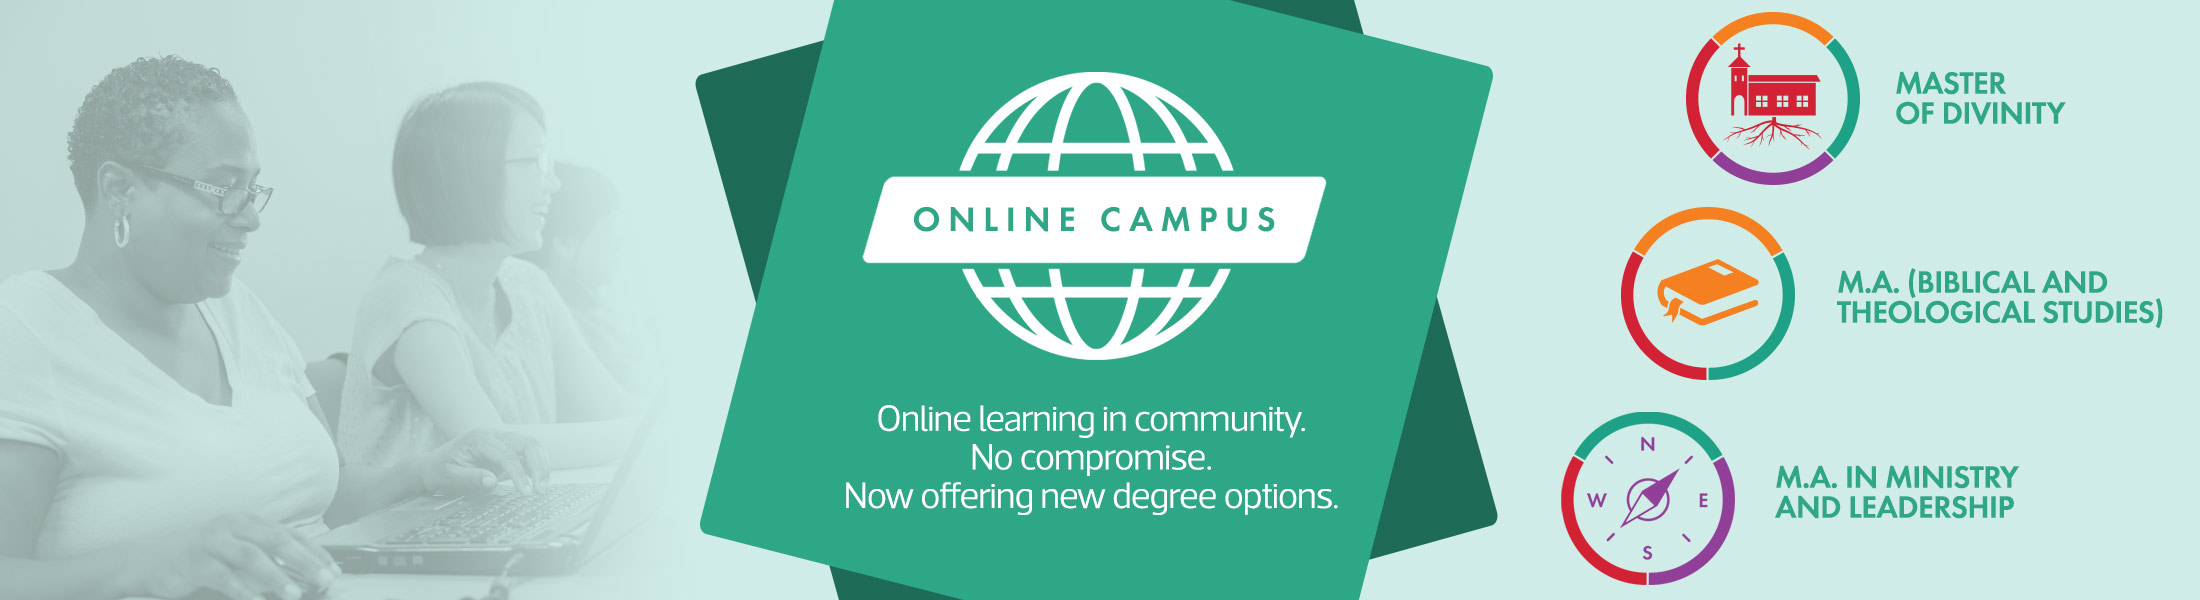 Online Seminary Degrees at Western Seminary